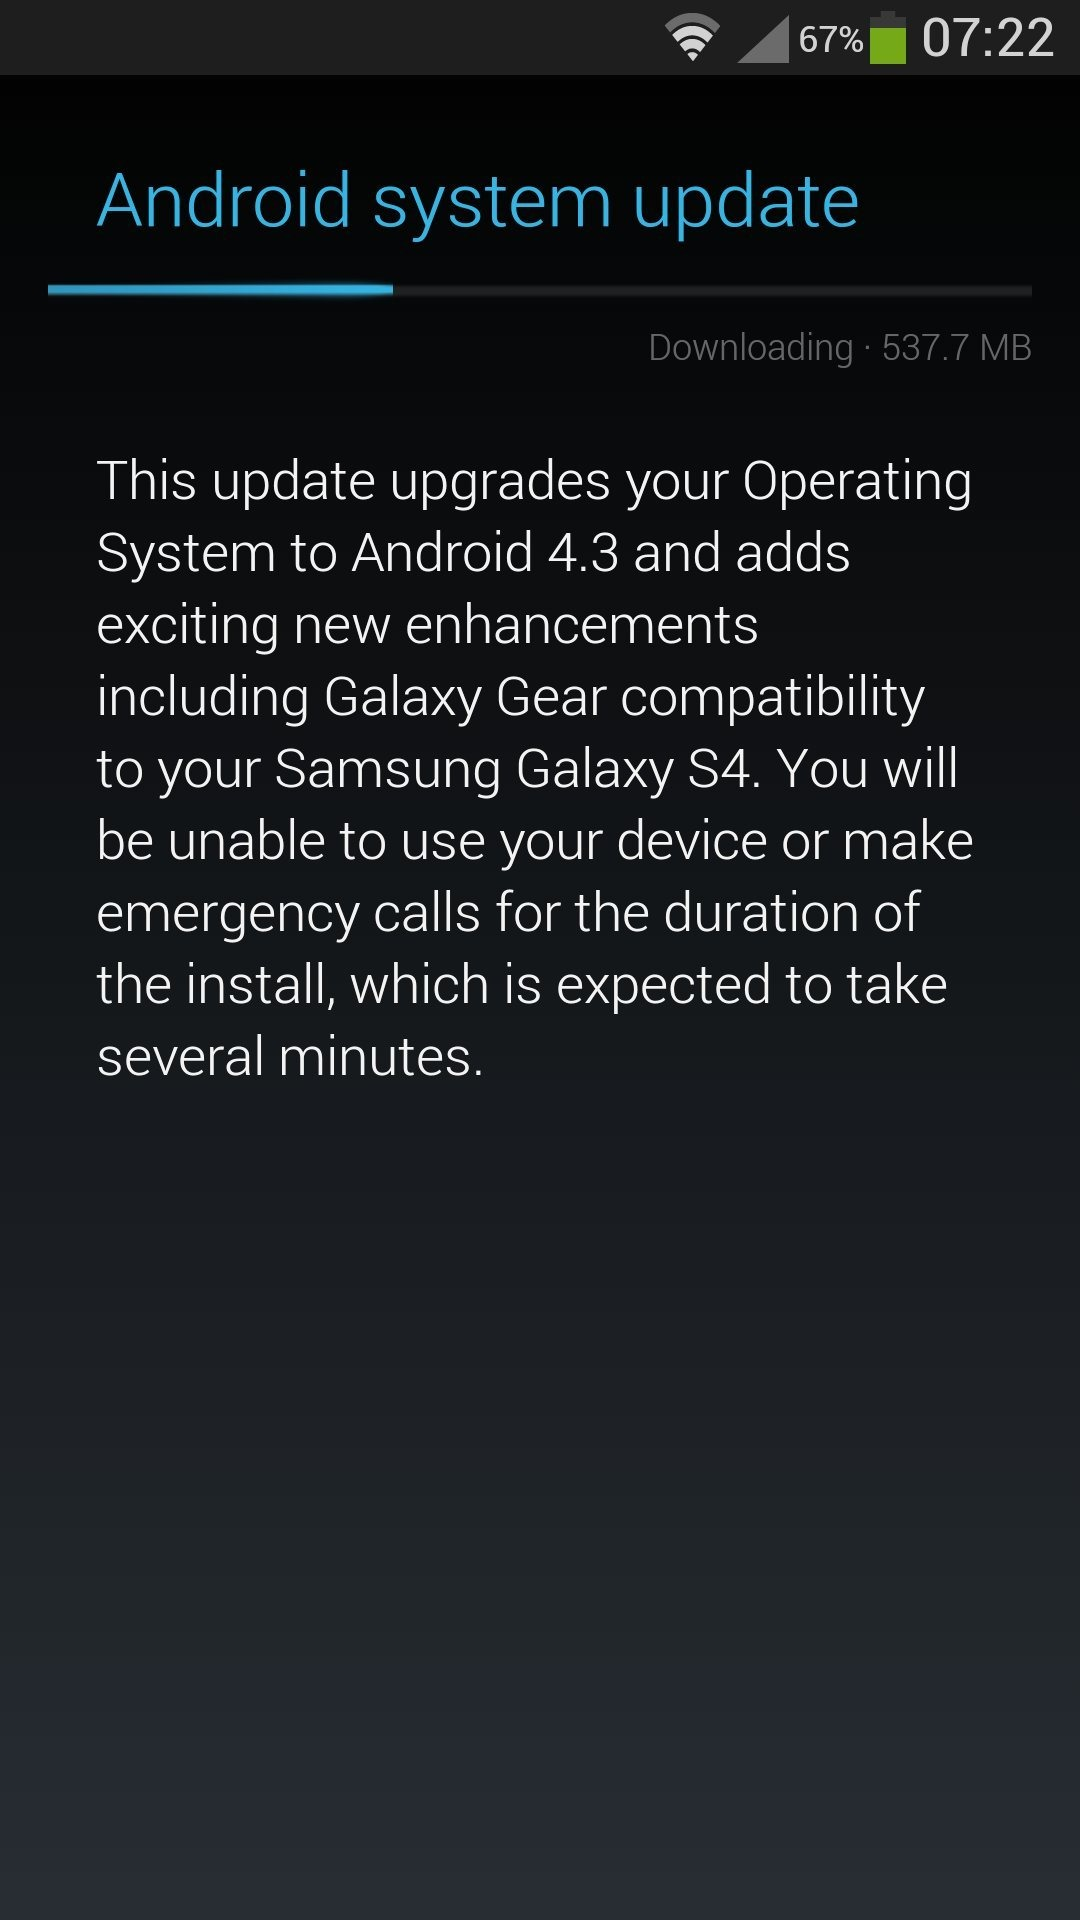 Android 4 3 And Galaxy Gear Update For Sprint's Galaxy S4 Is